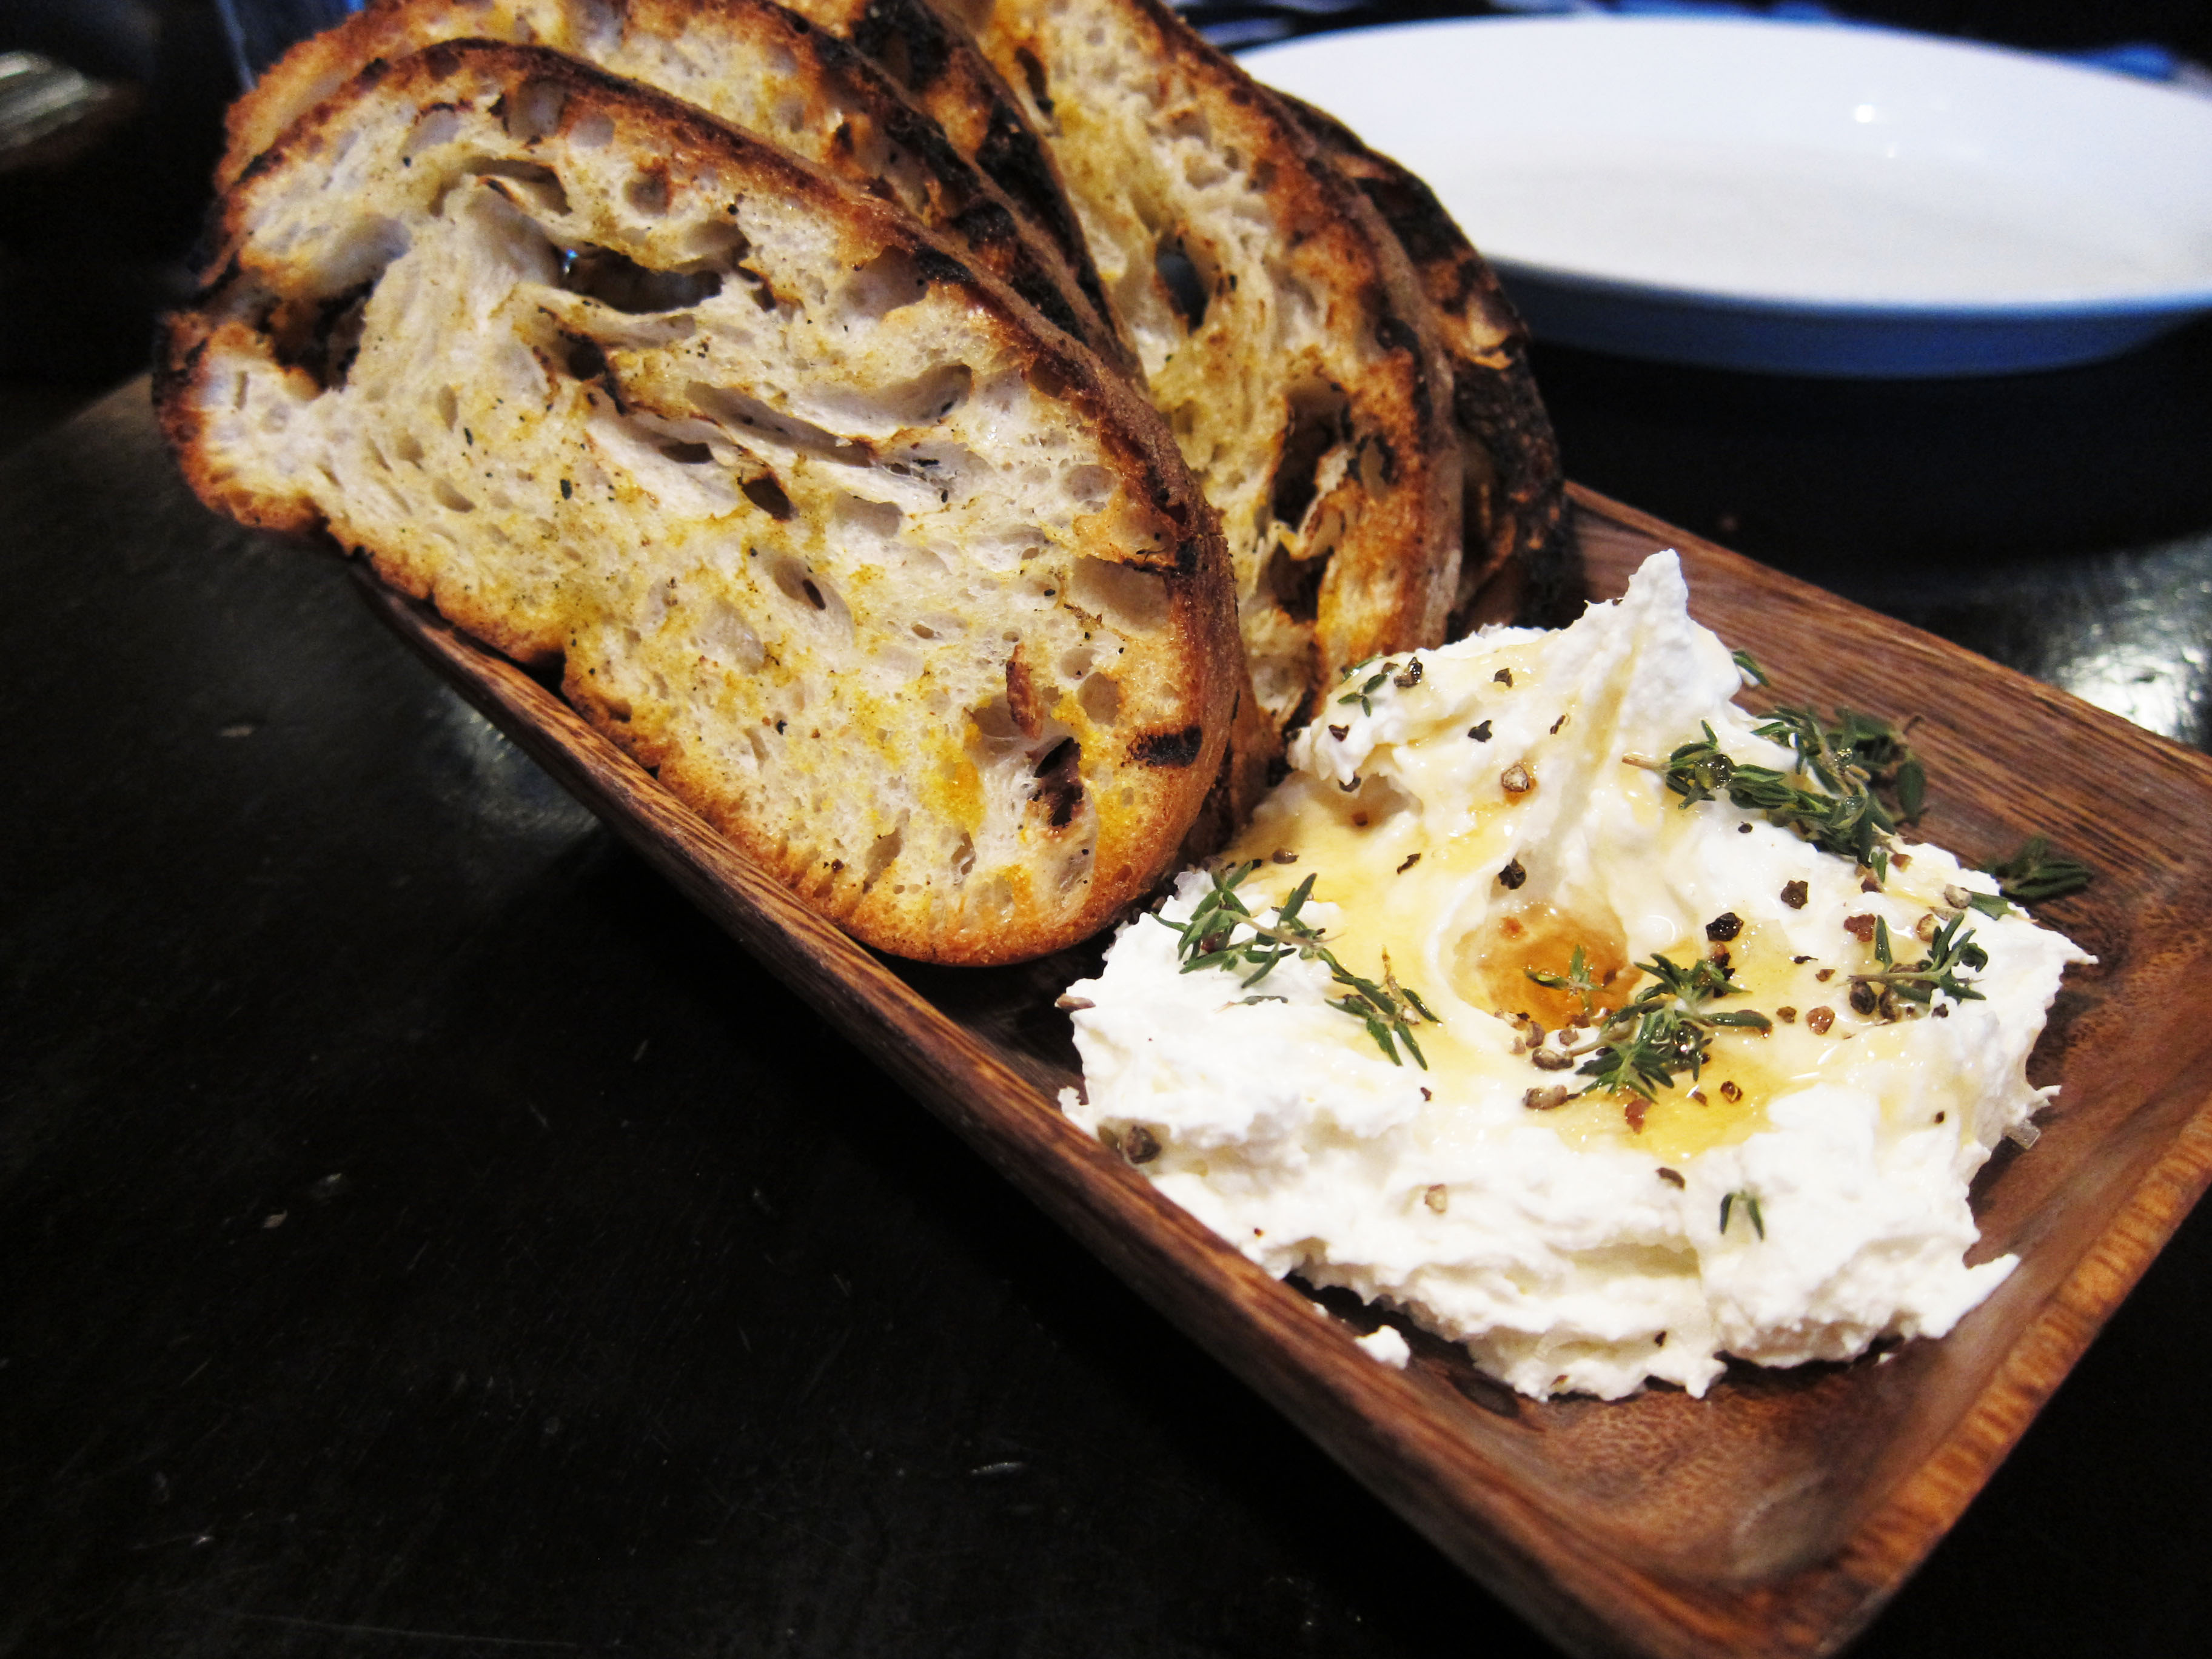 Sheep's Milk Ricotta with sea salt & herbs